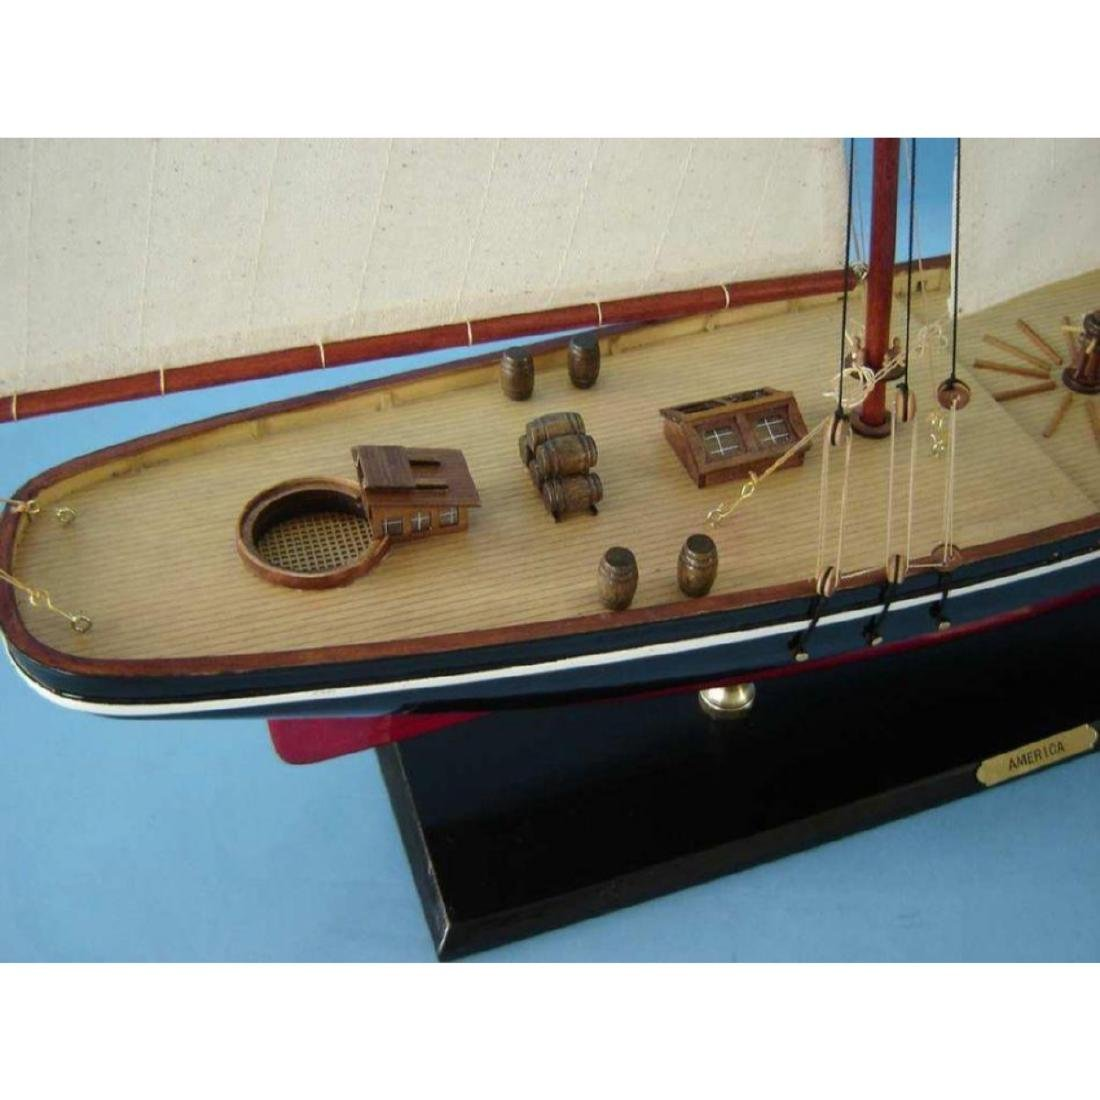 "Wooden America Model Sailboat Decoration 50"" Limited - 10"